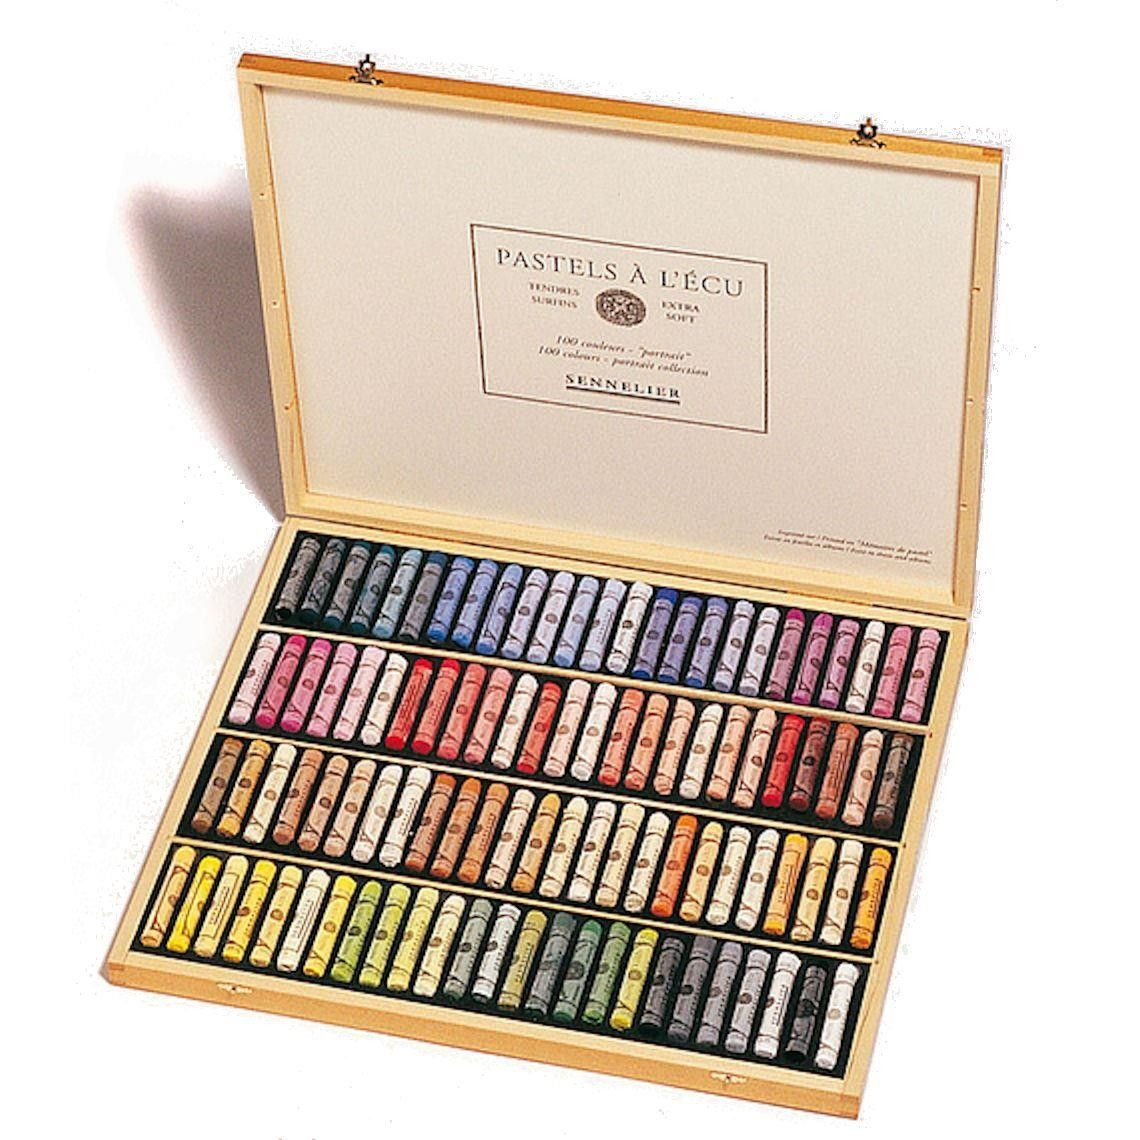 Sennelier Soft Pastels Portrait Set Wooden Box 100 Sticks Em 2020